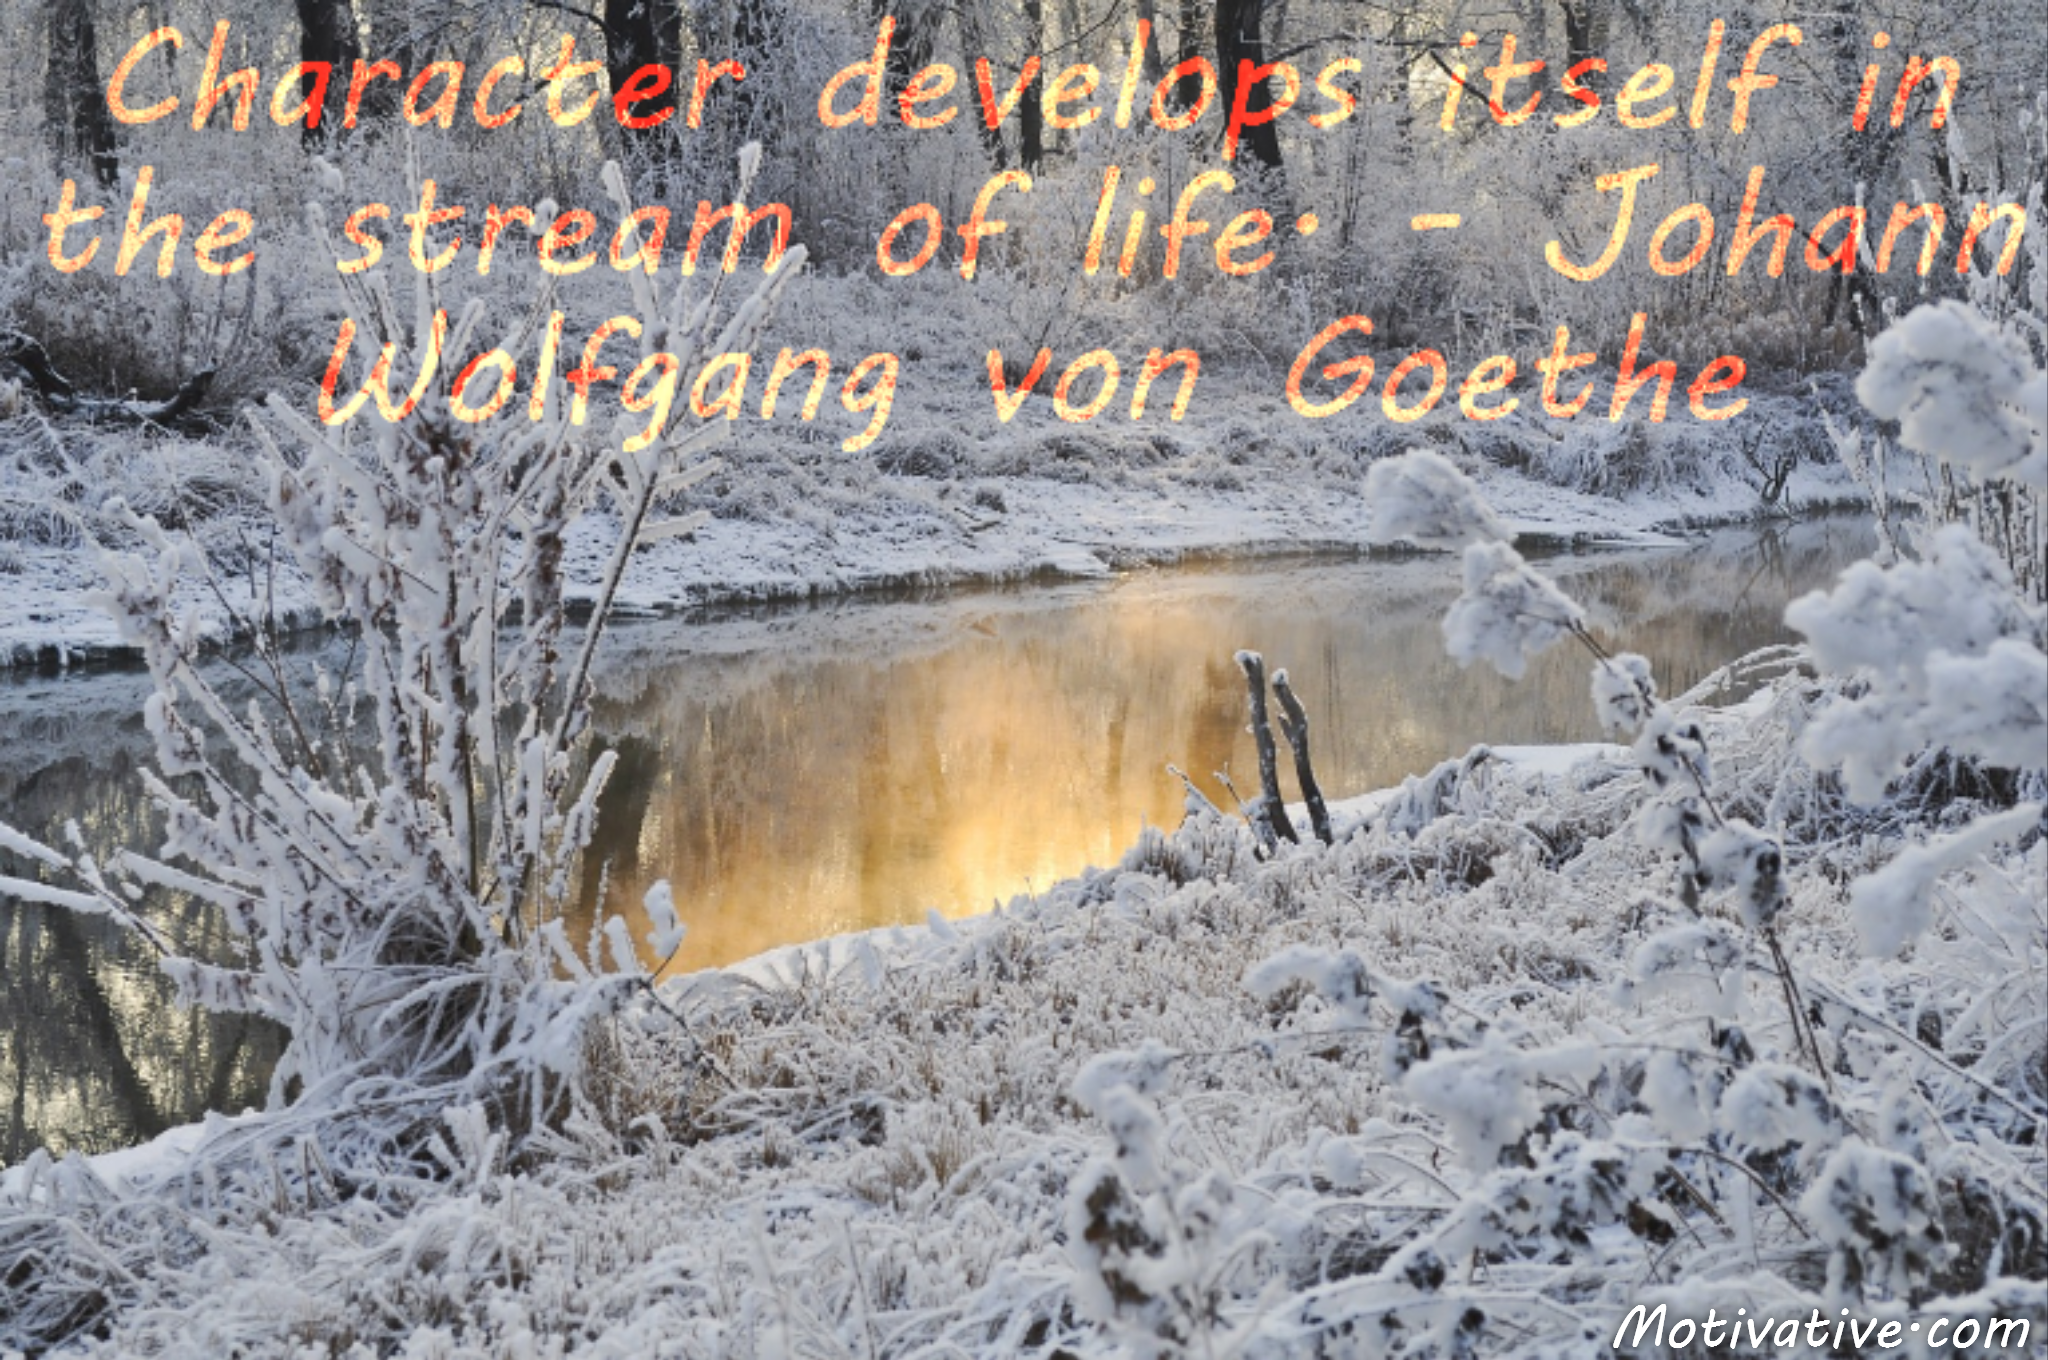 Character develops itself in the stream of life. – Johann Wolfgang von Goethe